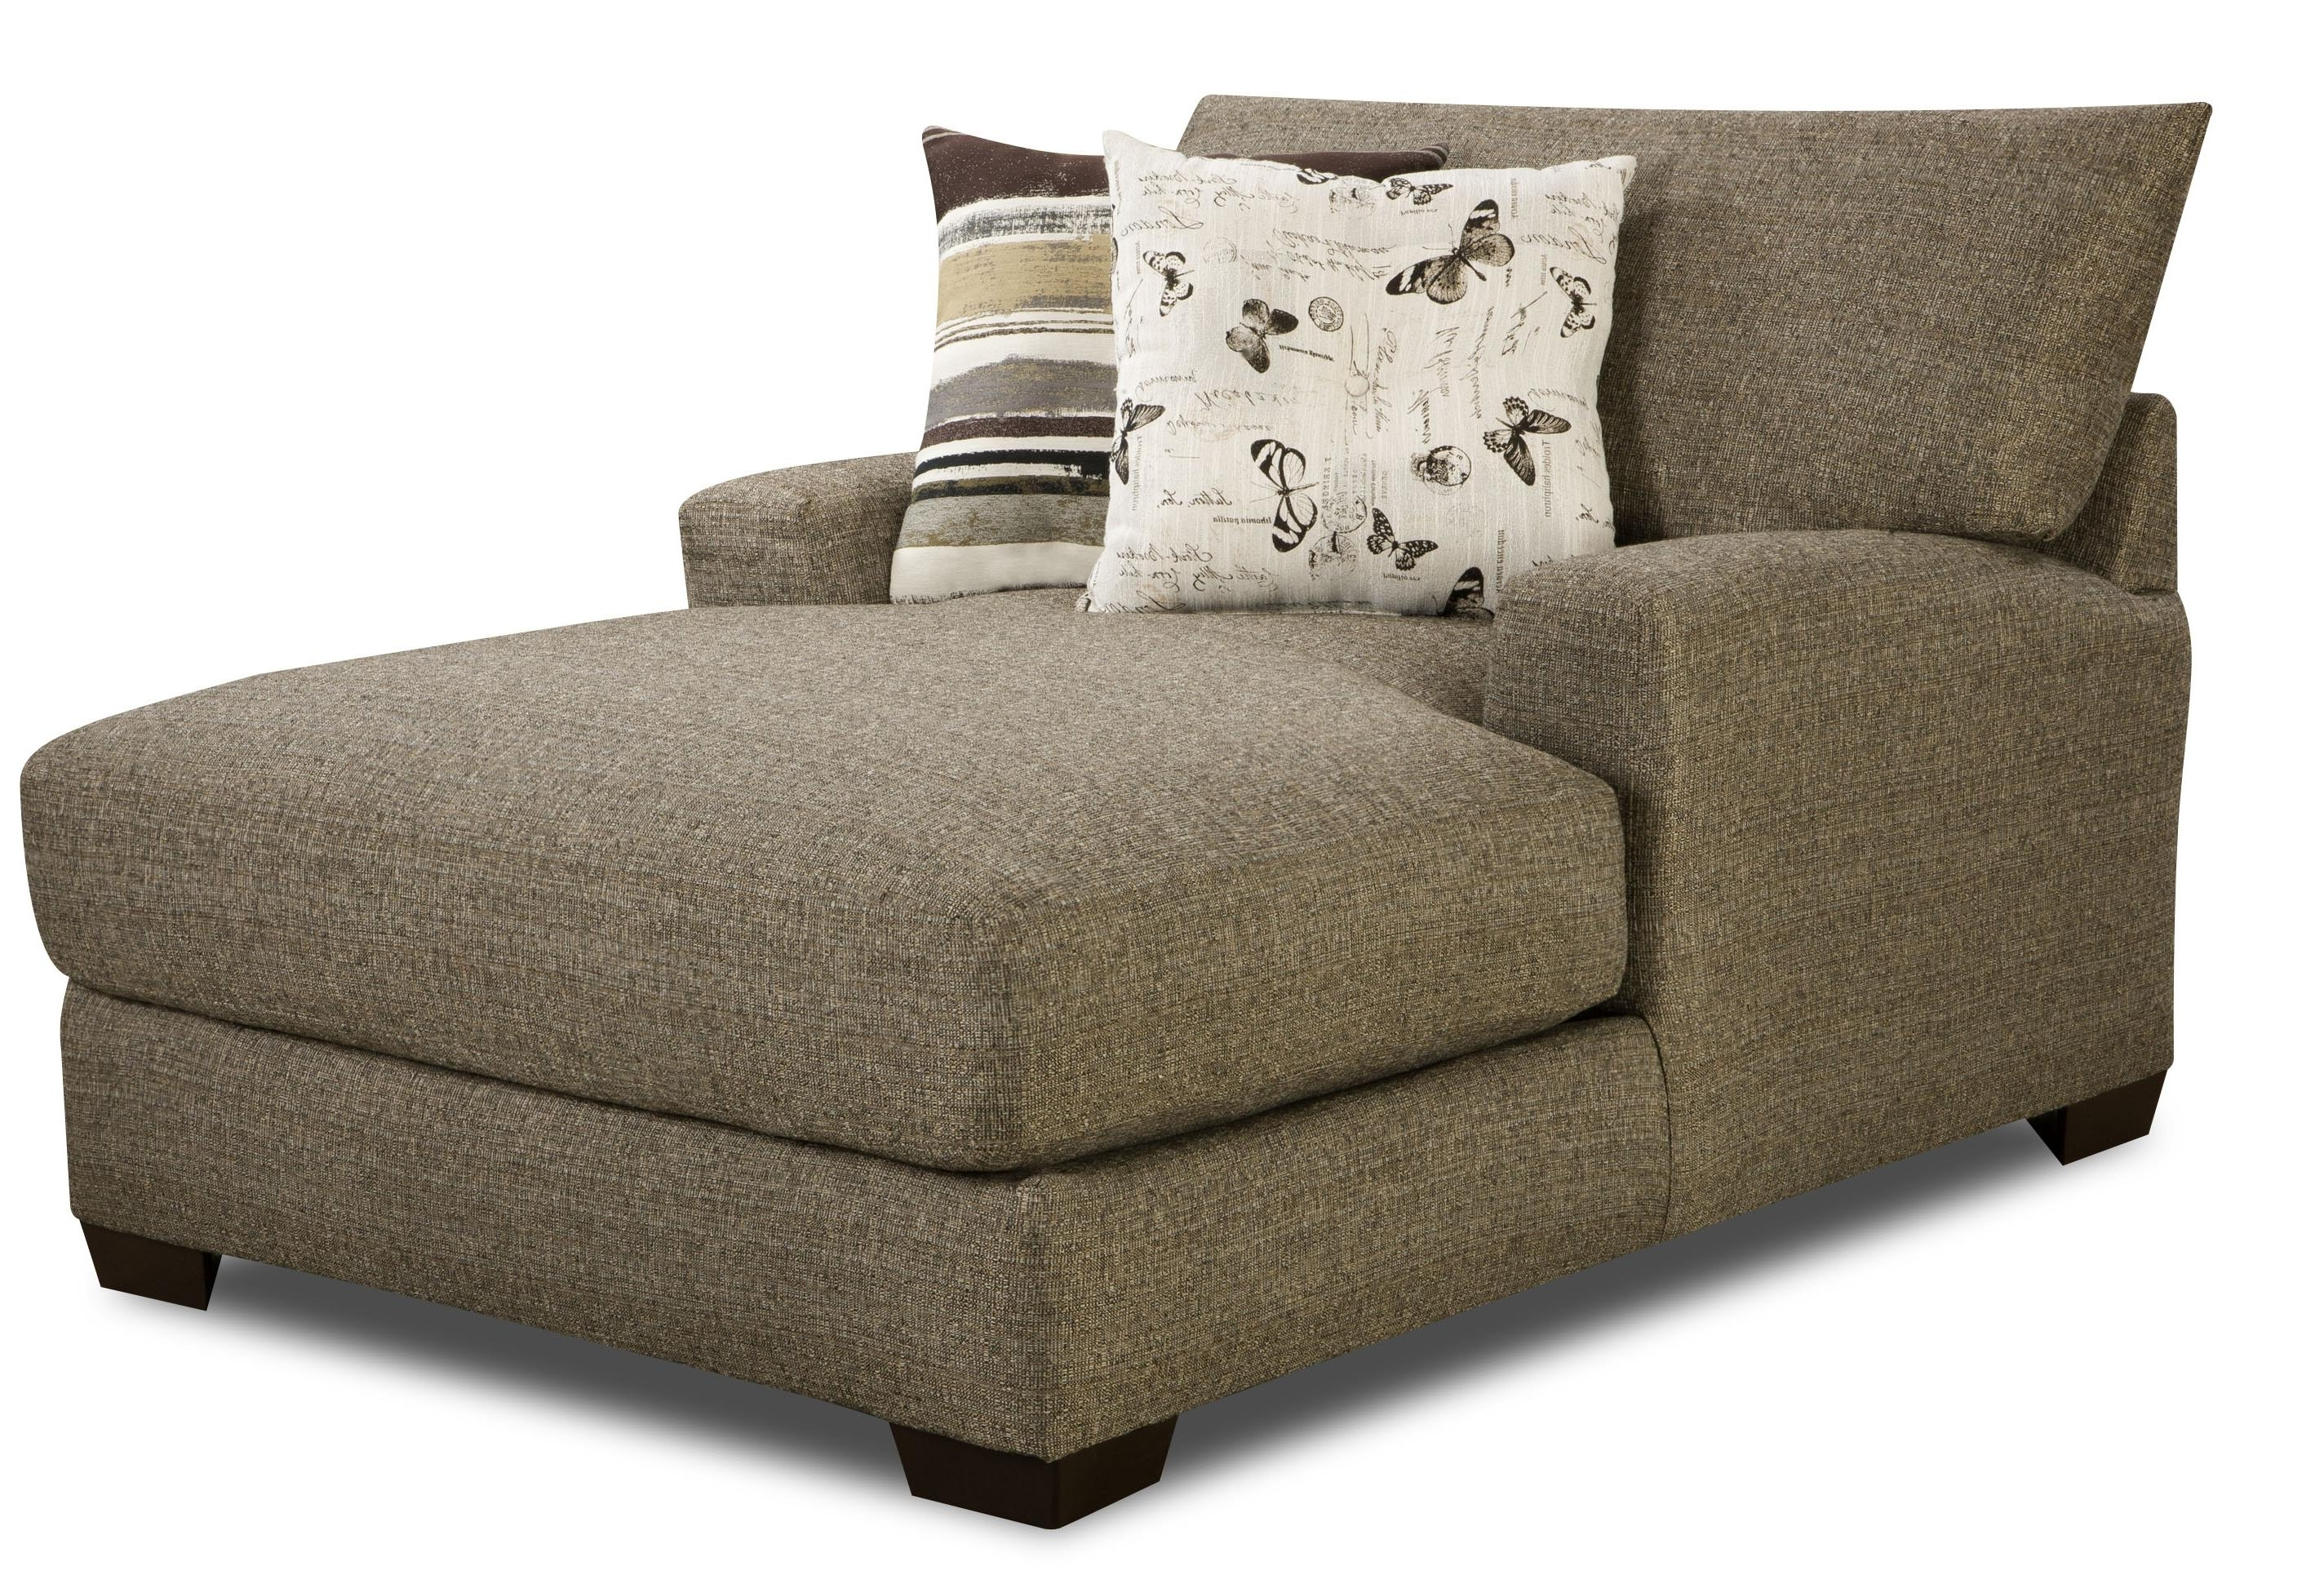 Perfect Reclining Chaise Lounge Chair Indoor In Home Designing With Widely Used Reclining Chaise Lounges (View 8 of 15)